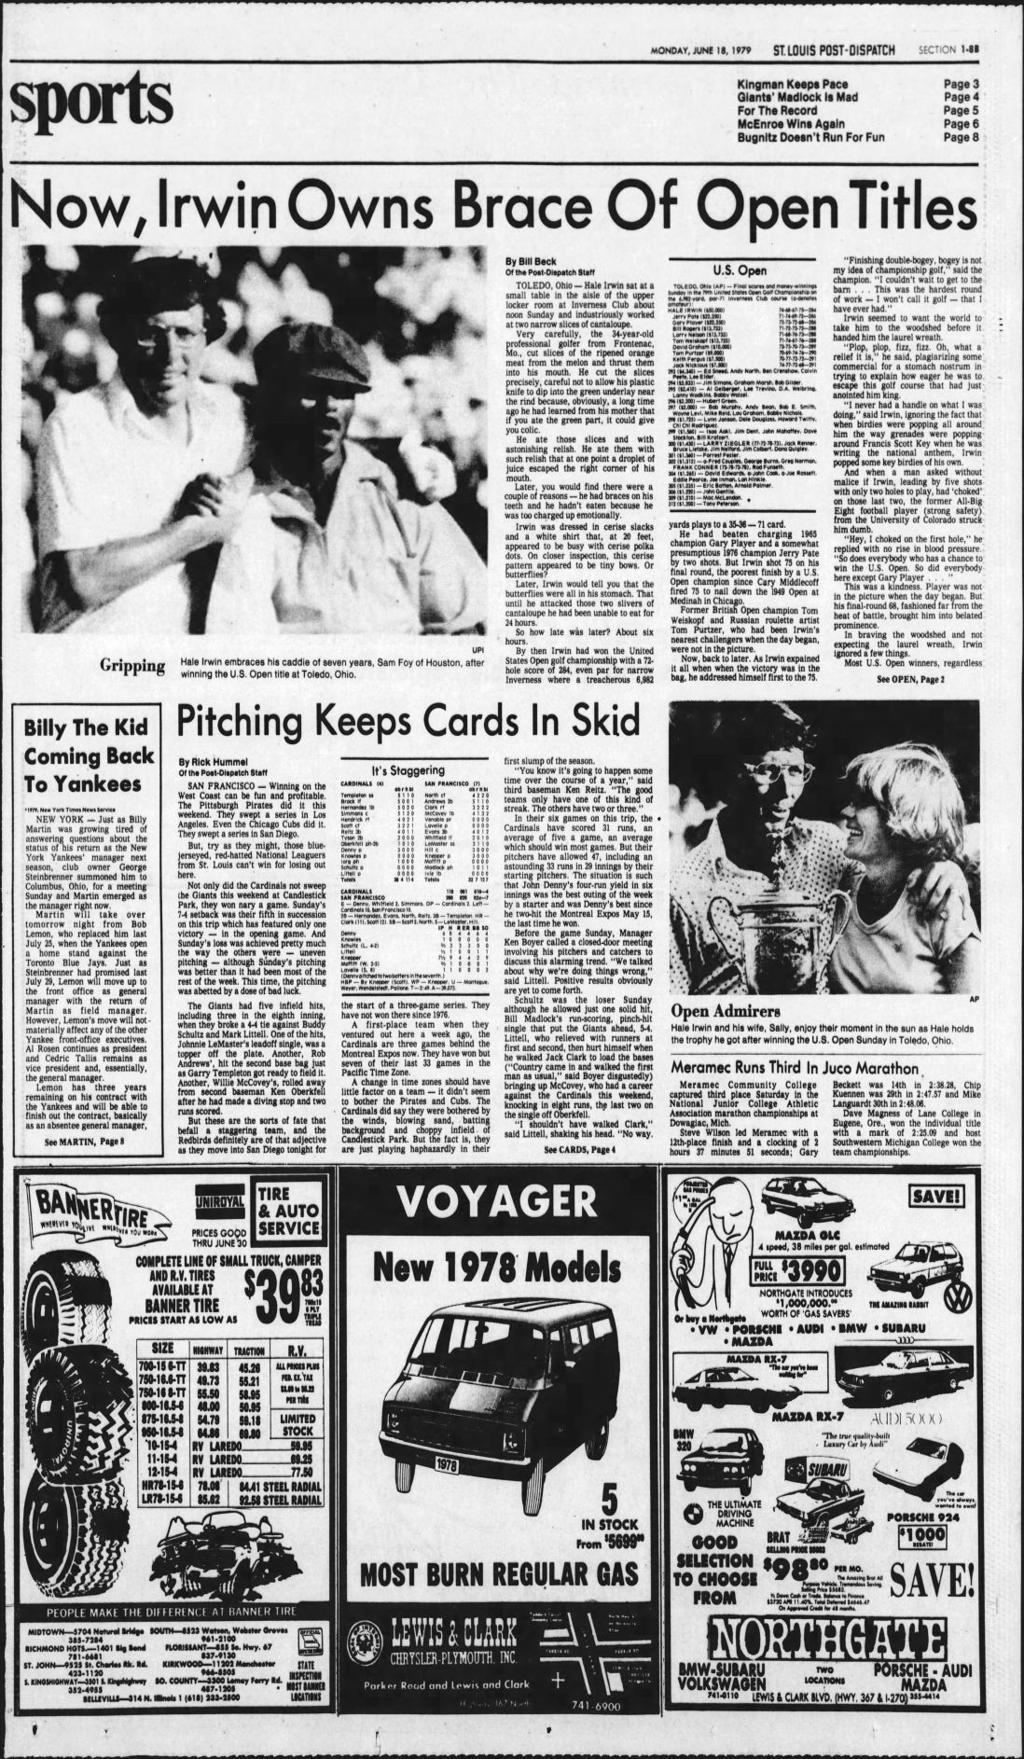 70 defining moments from the pages of the Post-Dispatch over the